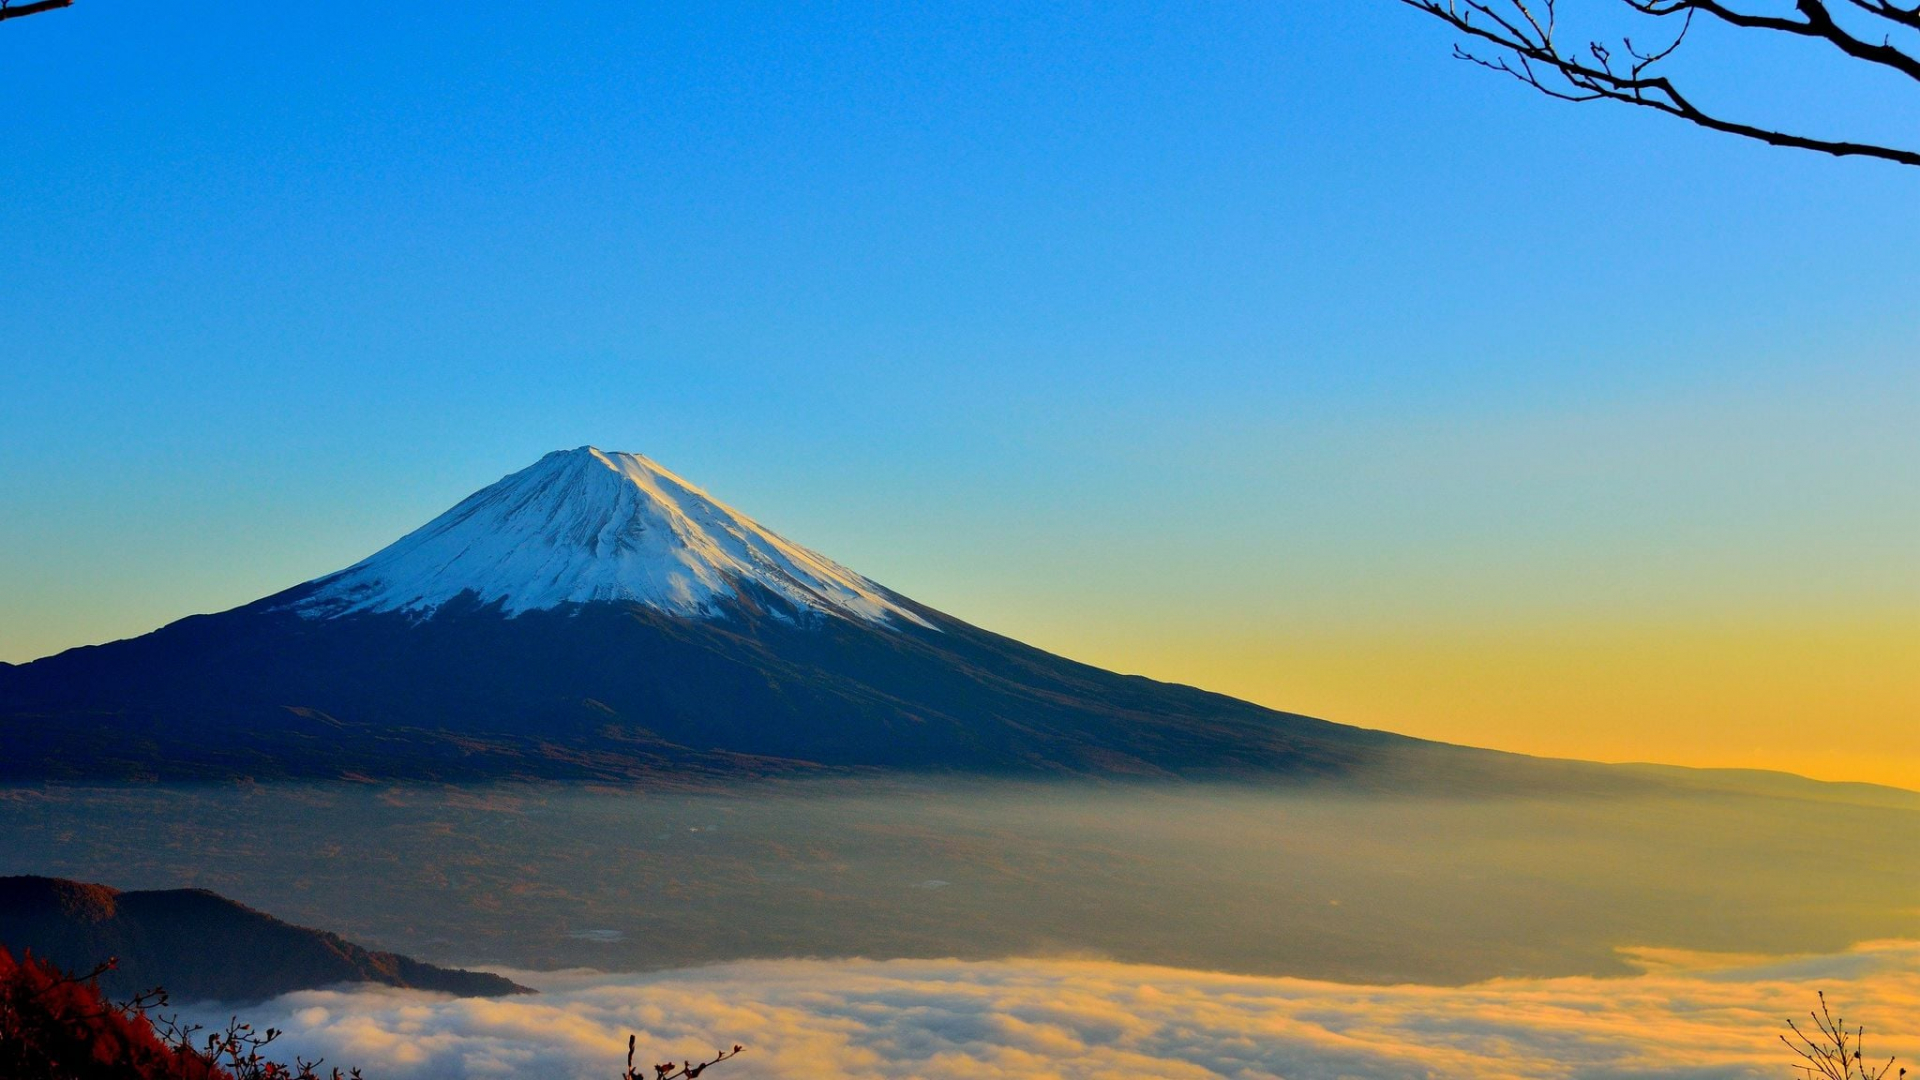 Free Download 36 Mount Fuji Wallpapers Hd 2048x1152 For